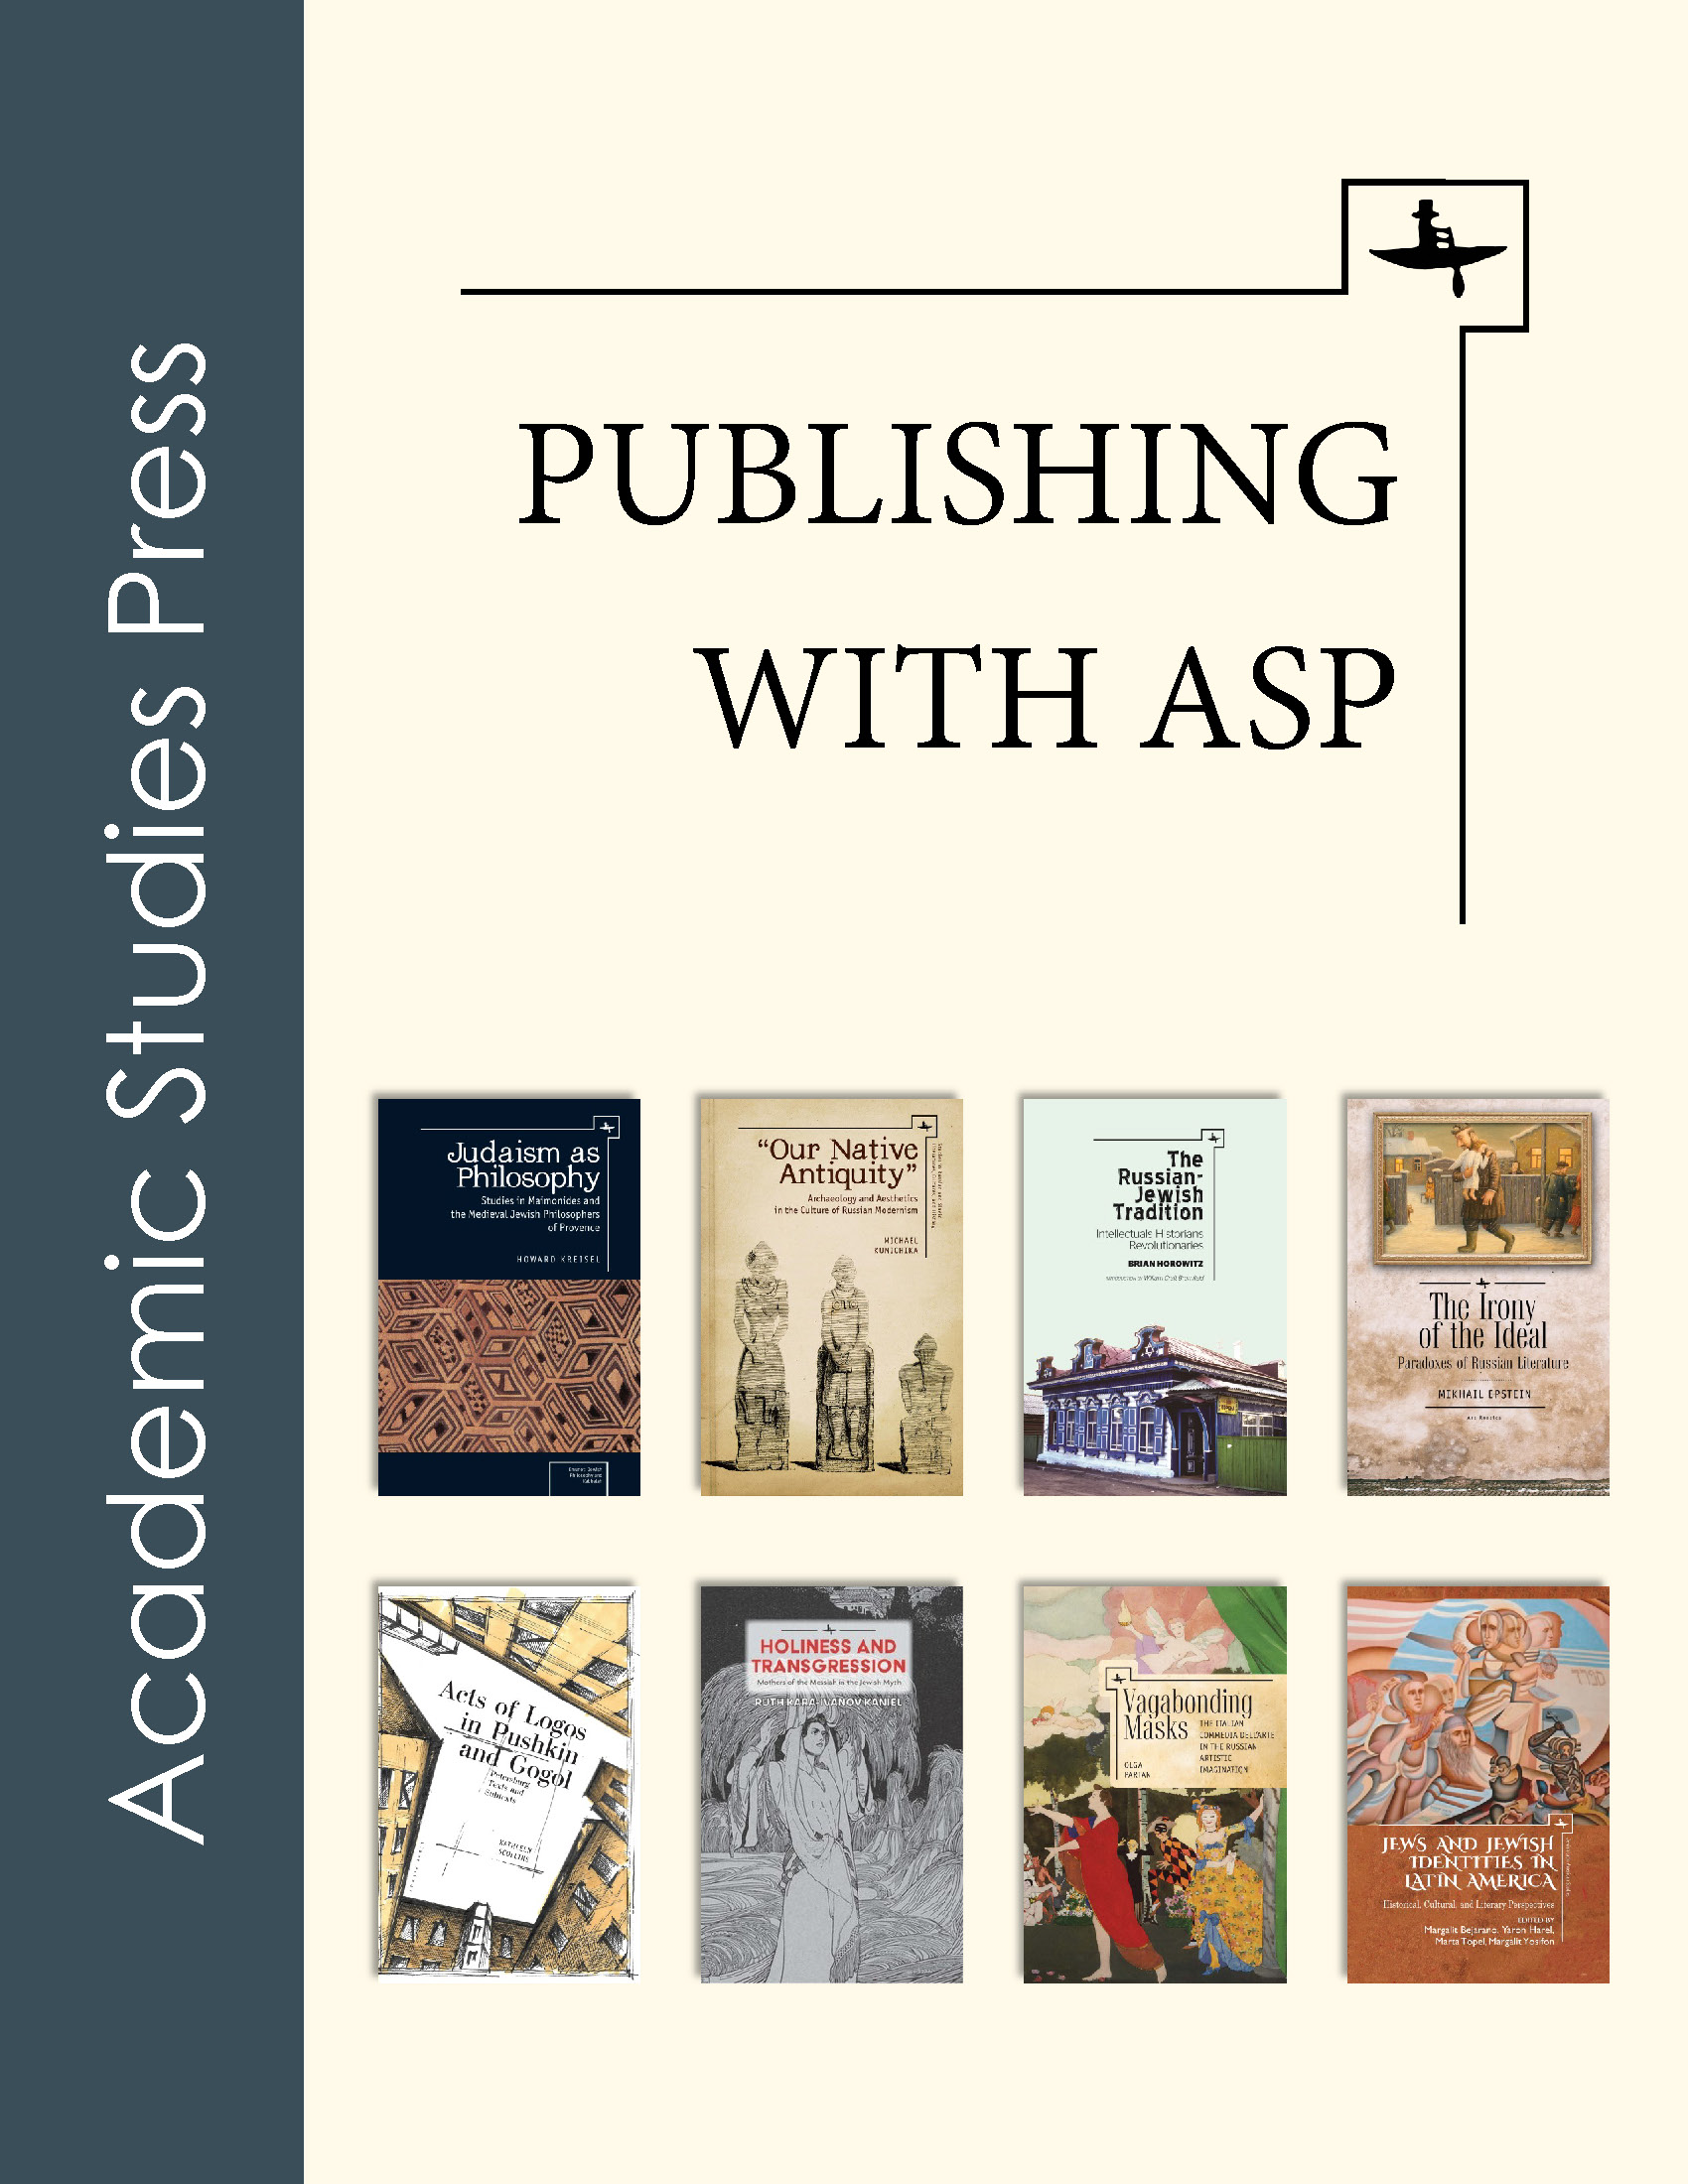 Pages from PublishwithASP Upd 12-12-18.jpg